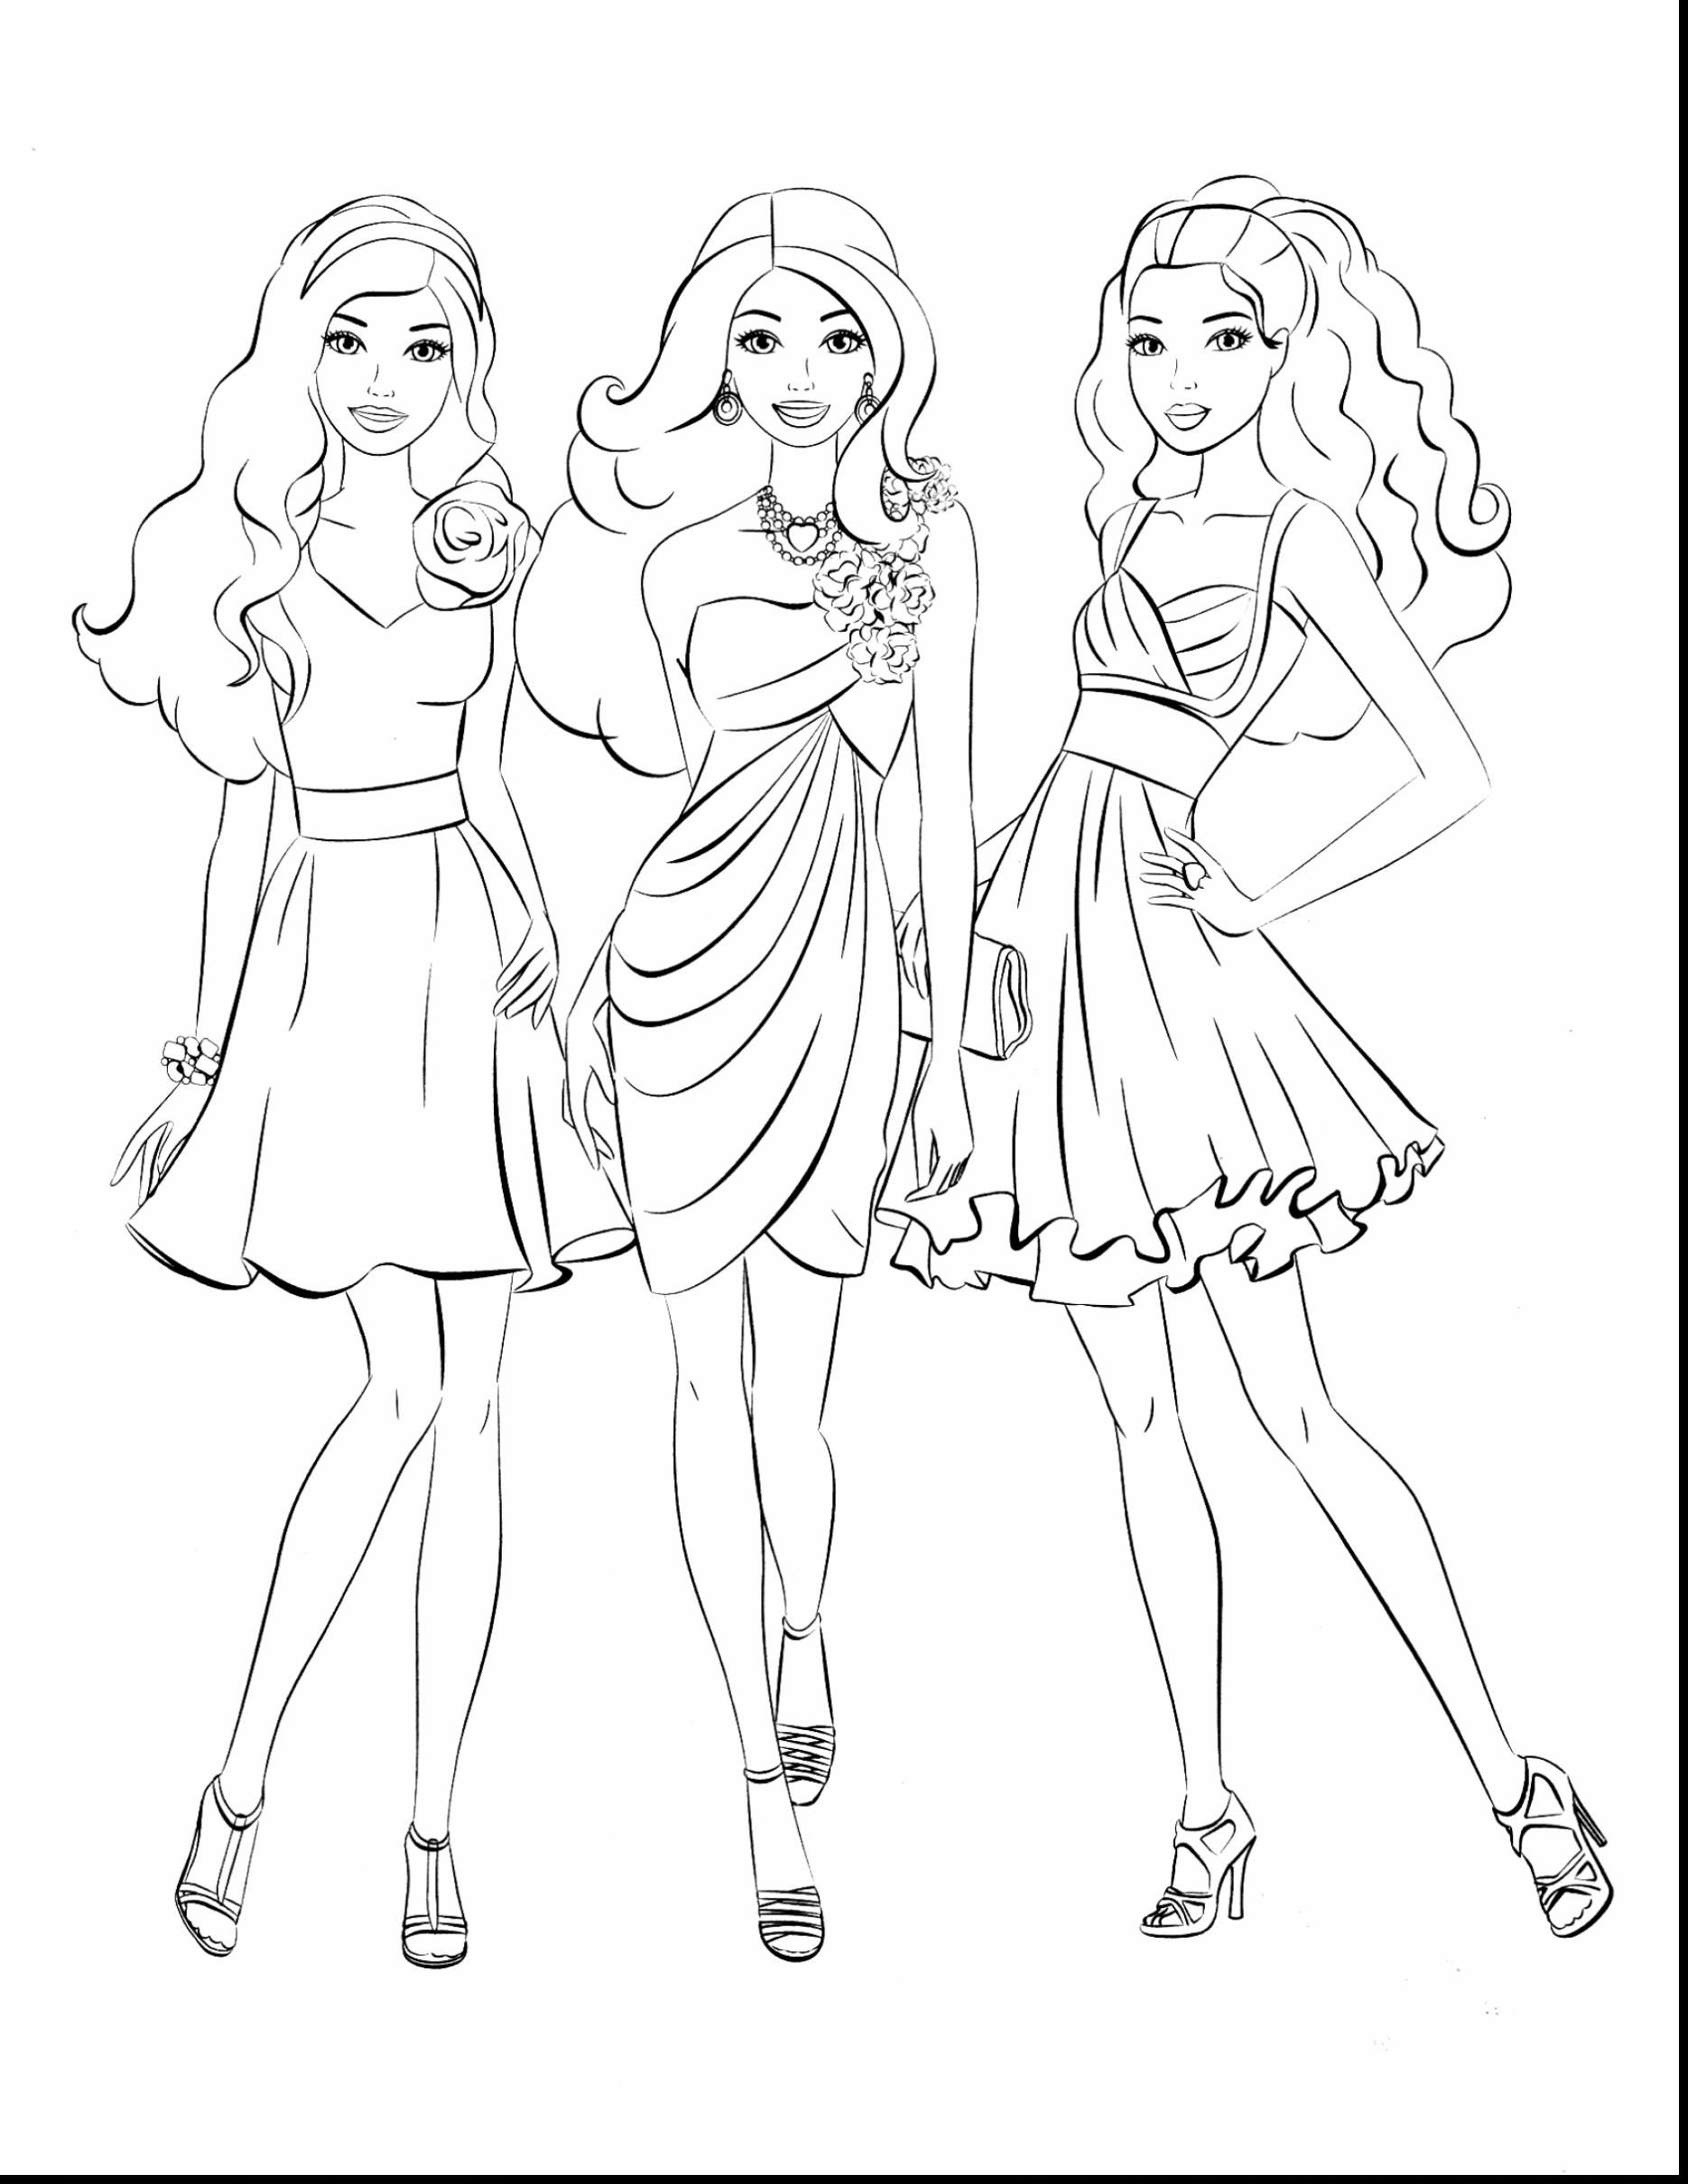 Coloring sheet barbie - Impressive Barbie Coloring Pages With Coloring Pages Barbie And Coloring Pages Barbie Princess Charm School